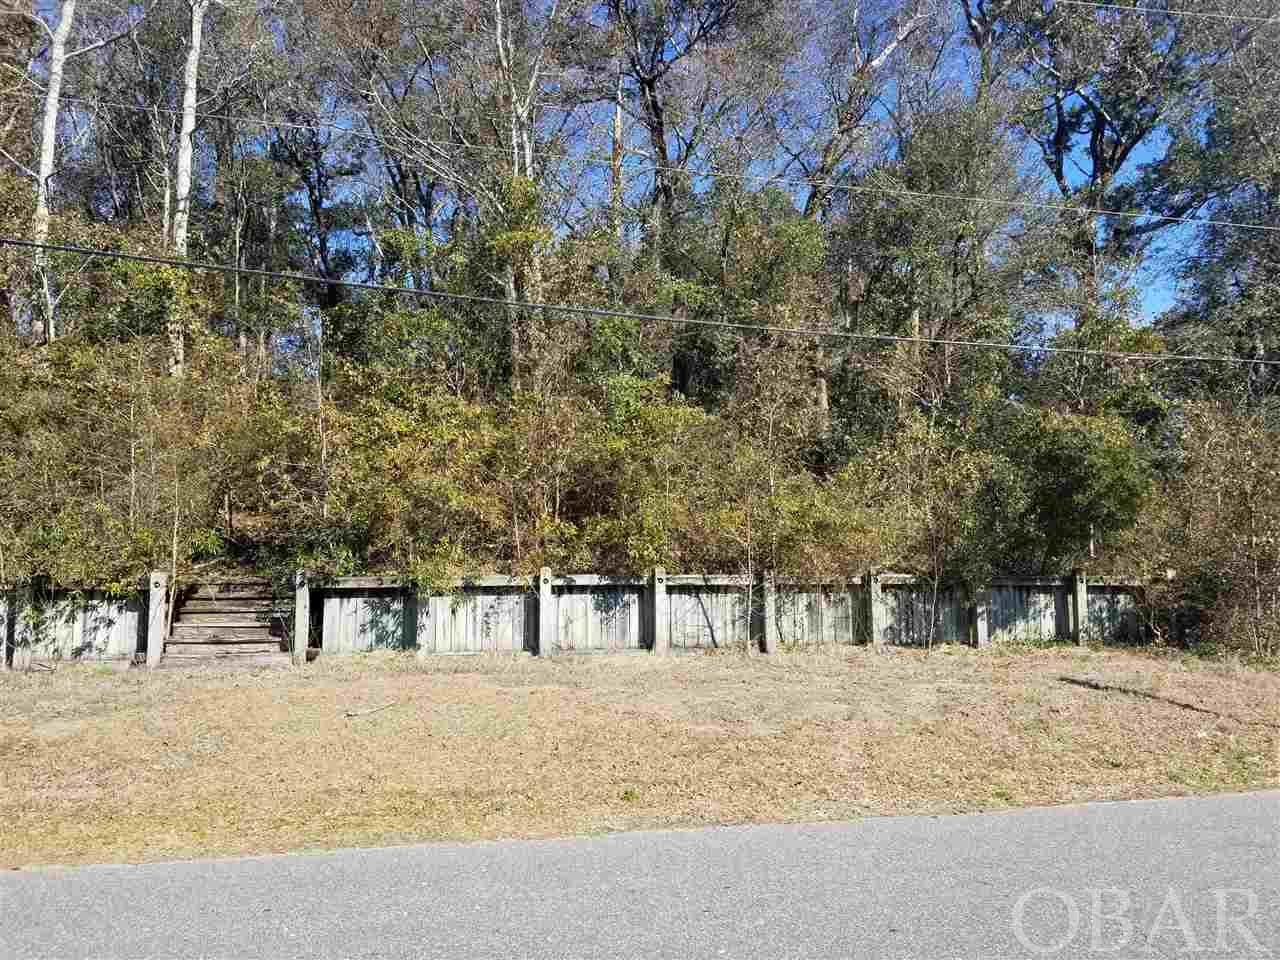 706 Colington Drive, Kill Devil Hills, NC 27948, ,Lots/land,For sale,Colington Drive,103581